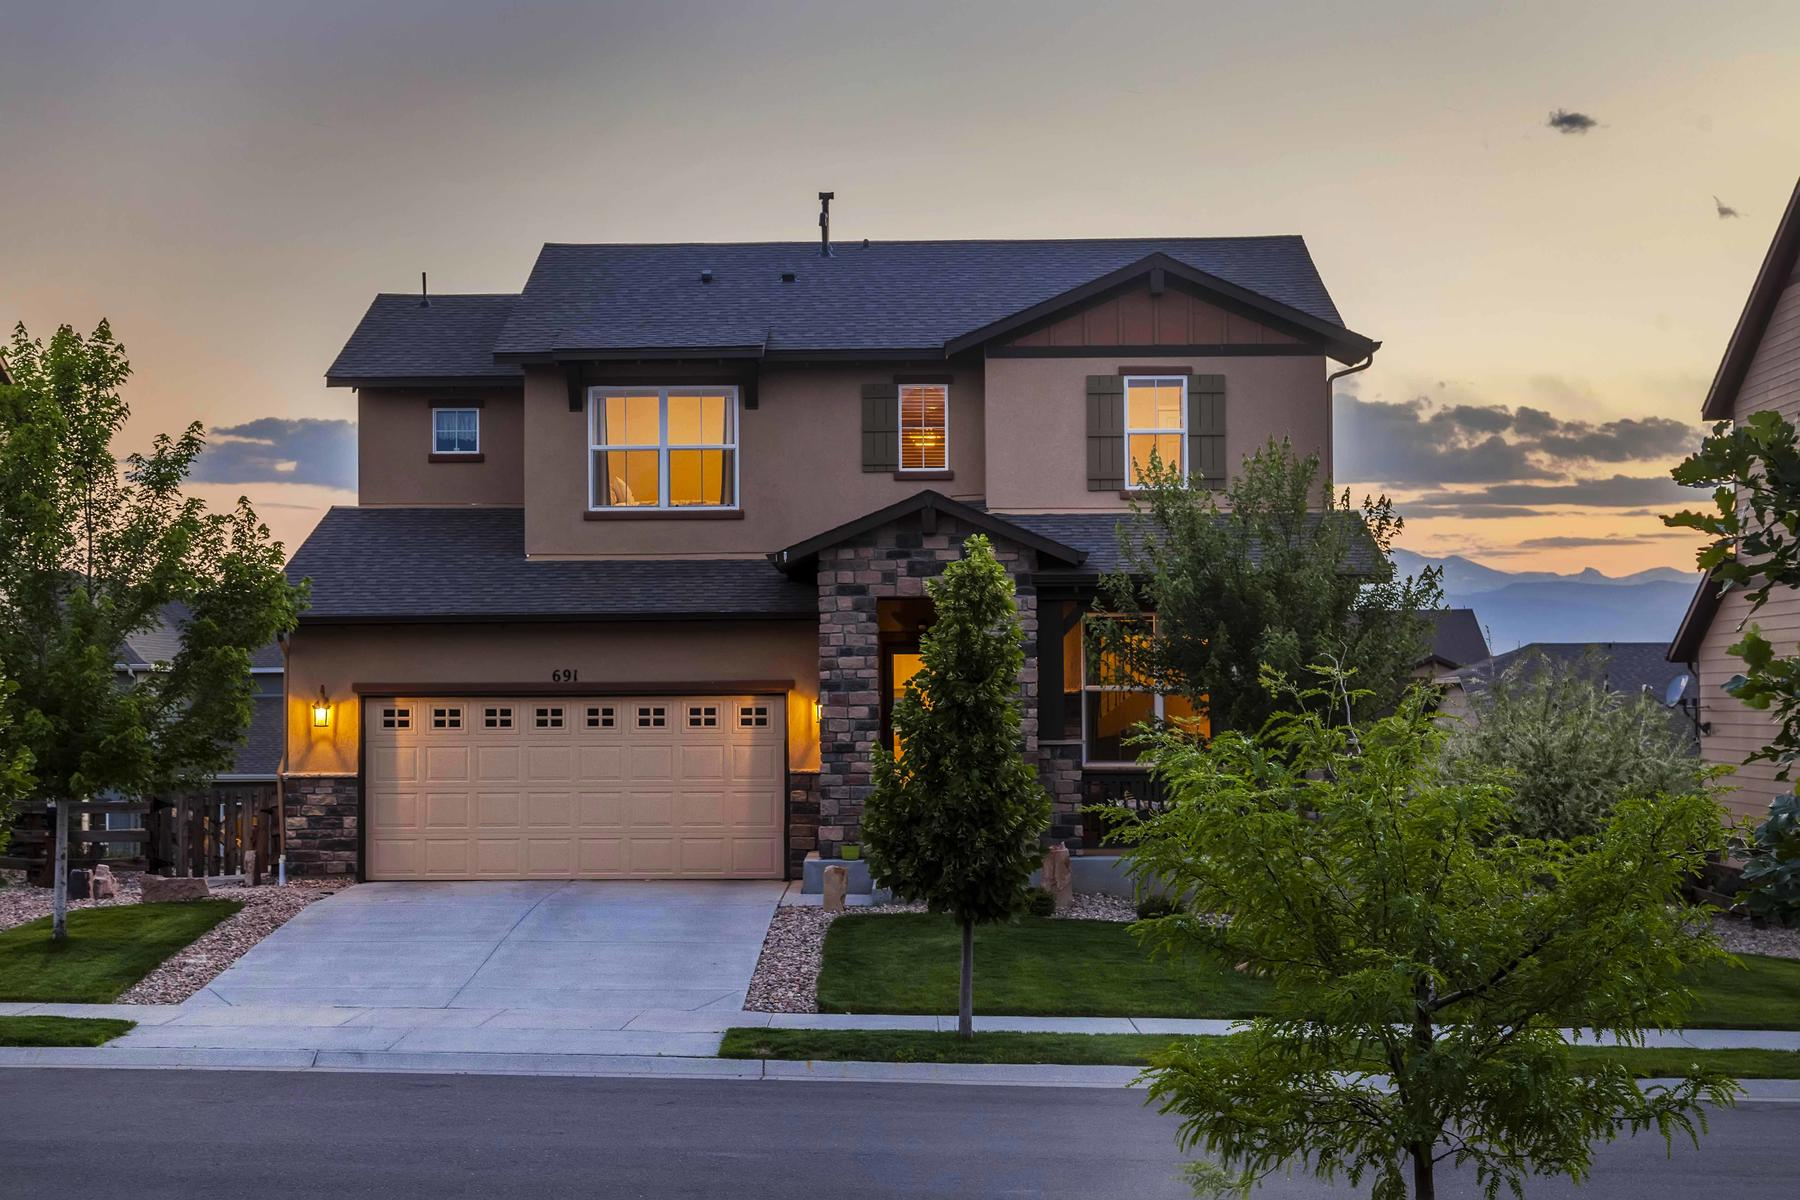 Single Family Home for Active at Beautifully Appointed Contemporary Home 691 Fossil Bed Cir Erie, Colorado 80516 United States